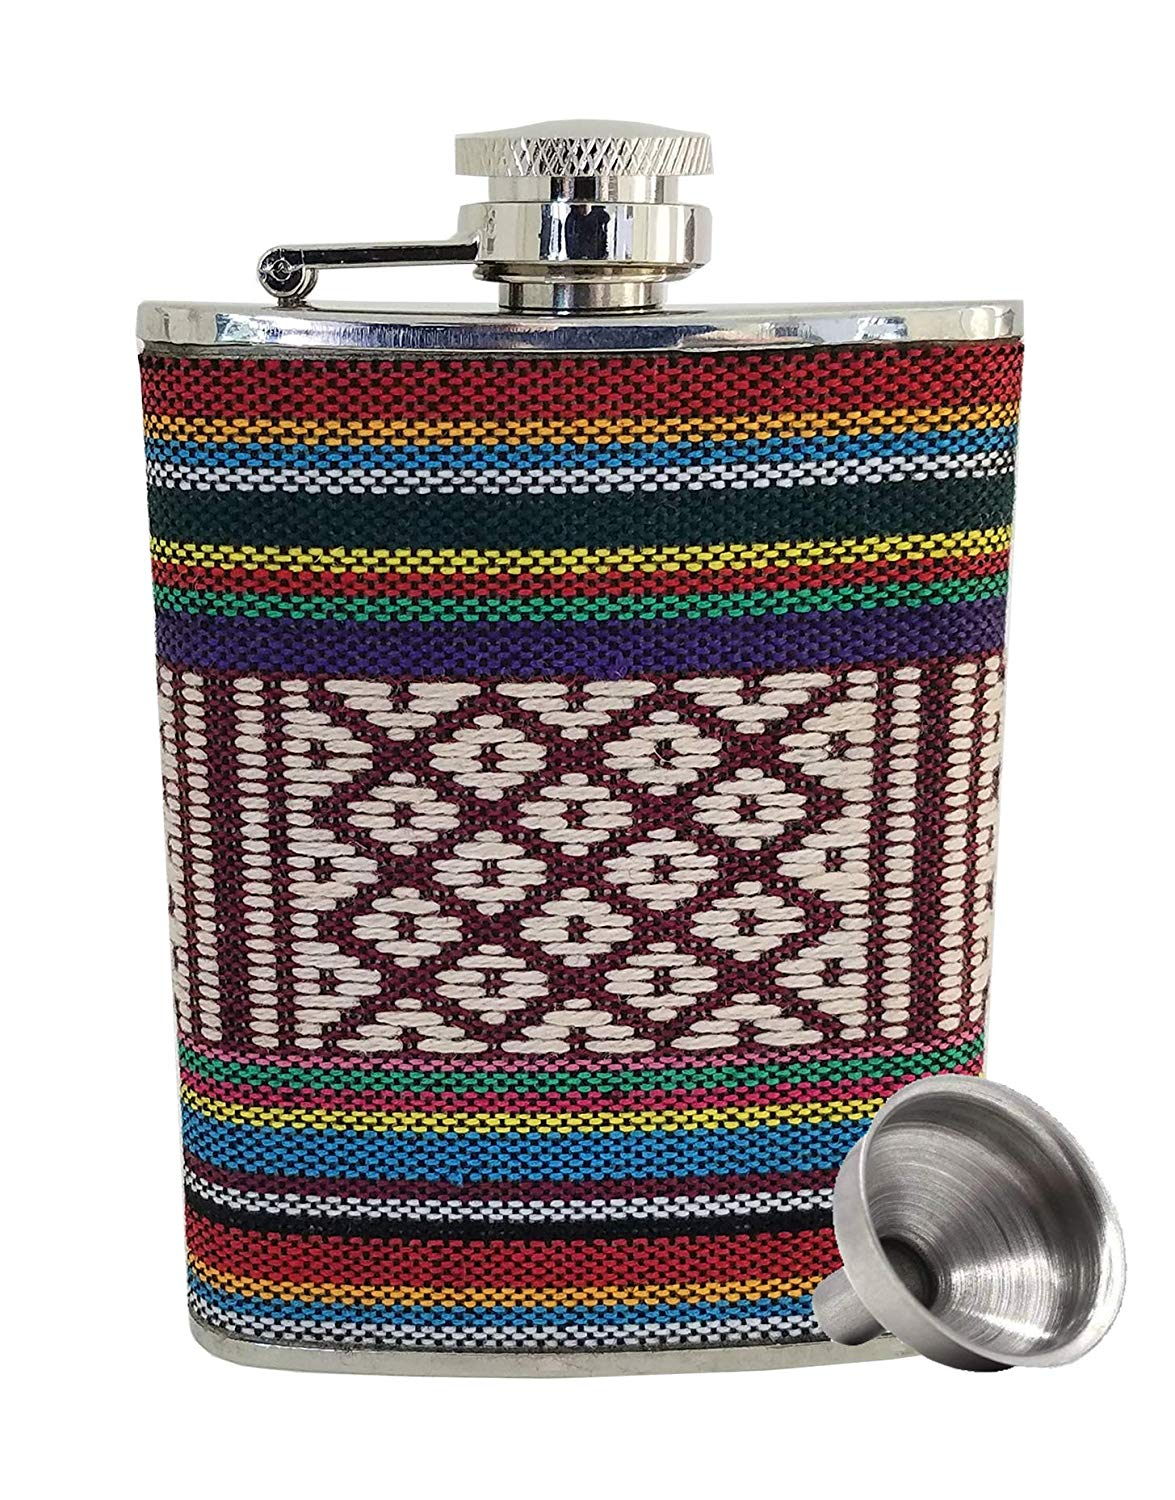 UTALY Men Hip Flask for Liquor + Funnel-Set - Wine Pot for Women Travel Camping Outdoor Picnic Portable Drinking Cup with Knitted Sleeve